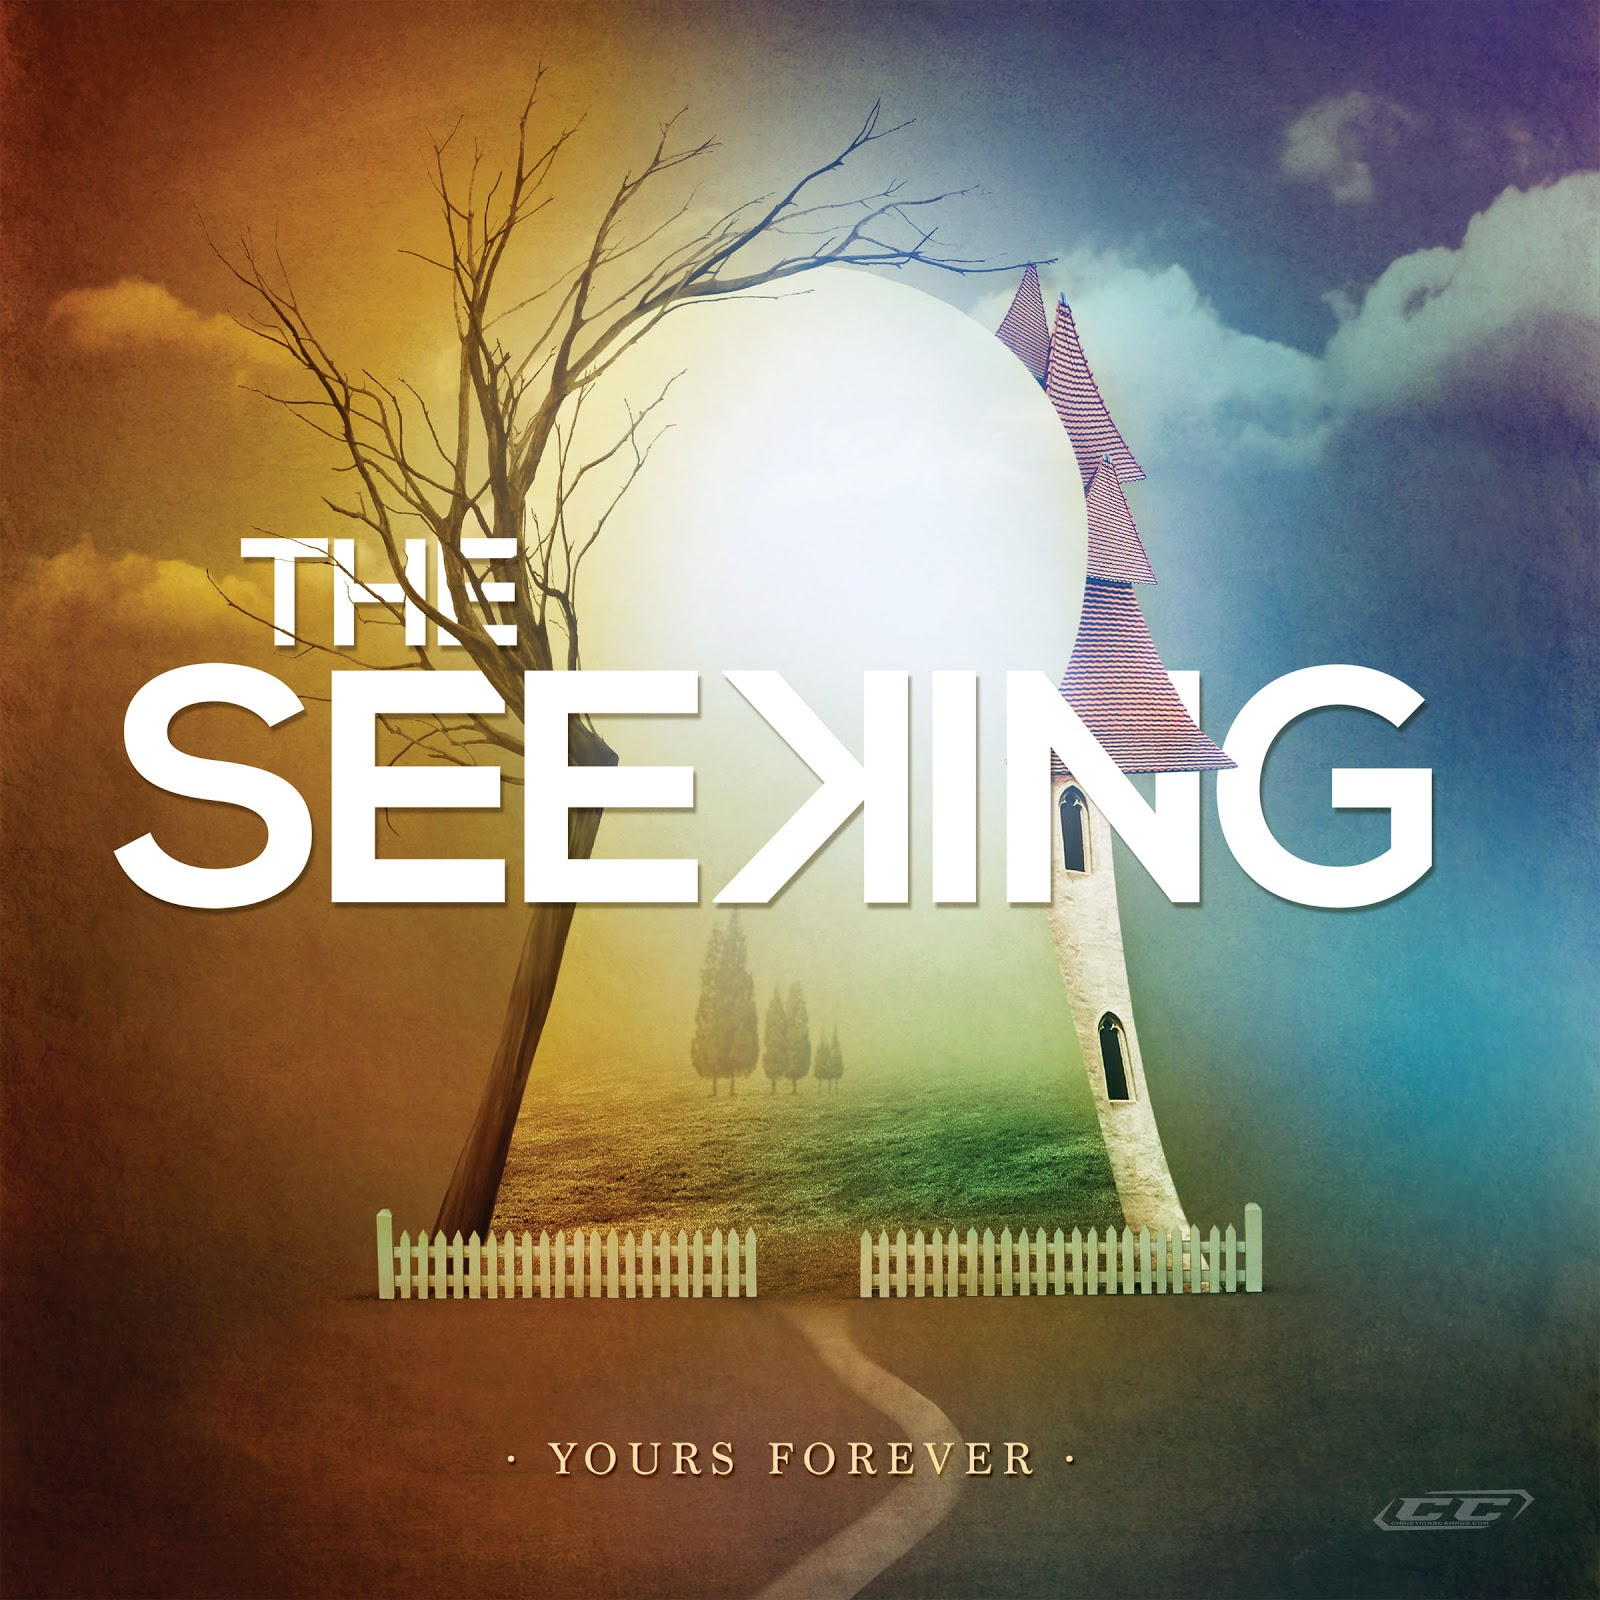 The Seeking - Yours forever 2012 English Christian Album Download